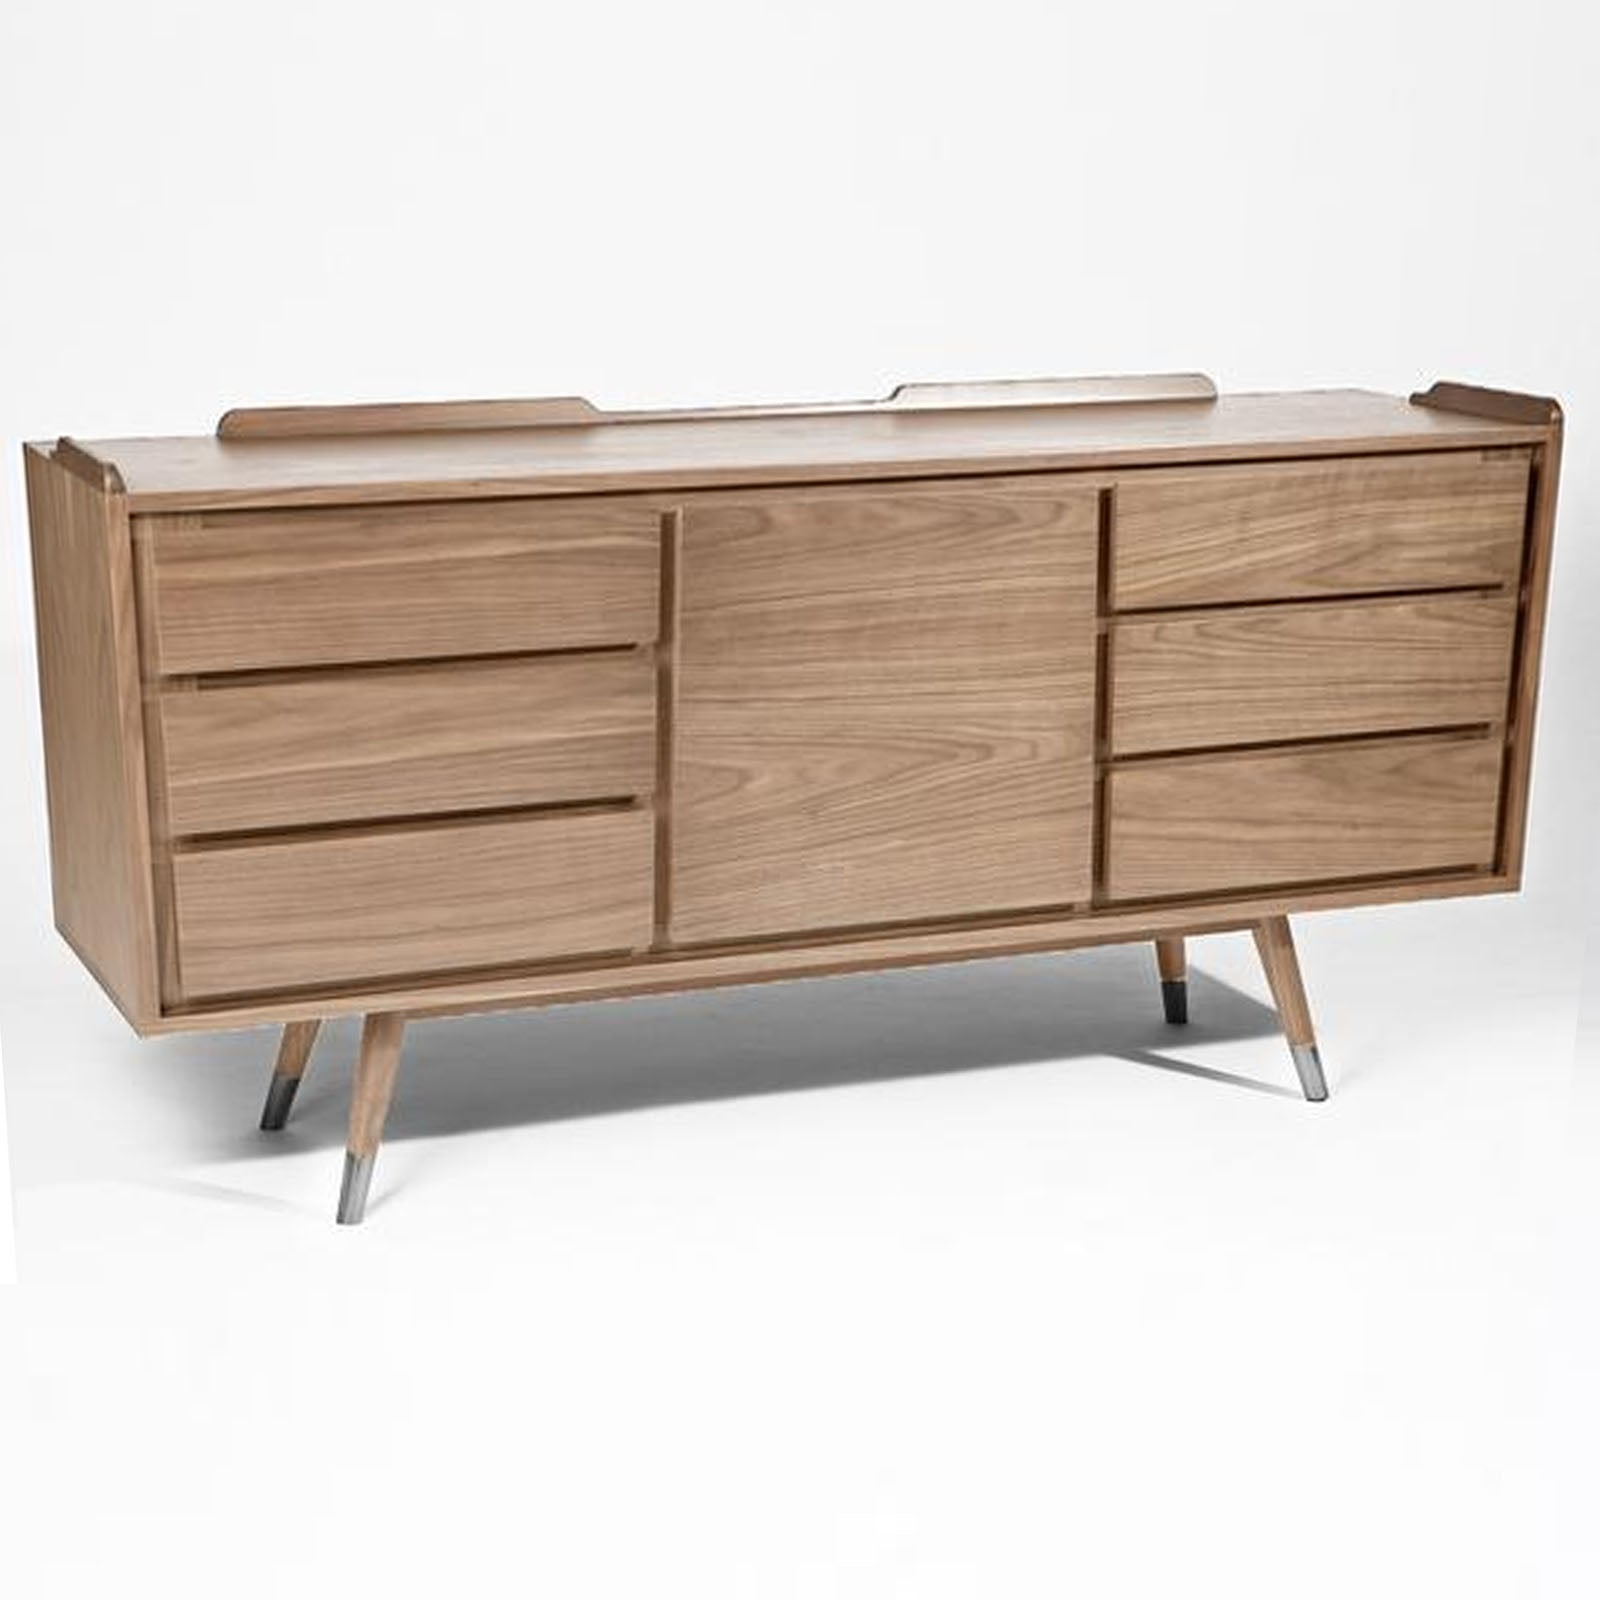 Viborg 160cm cabinet/Sideboard  BSG15048-N -  160 خزانة / خزانة جانبية فيبورغ سم - Shop Online Furniture and Home Decor Store in Dubai, UAE at ebarza